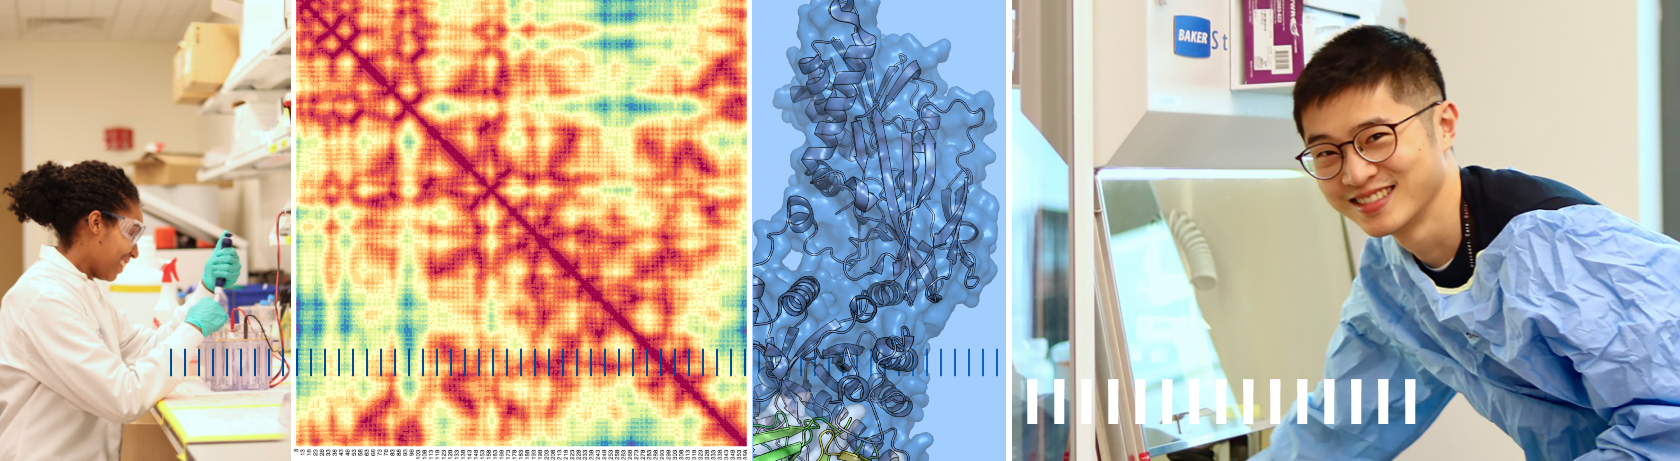 Collage of photos showing lab members and protein structure imagery